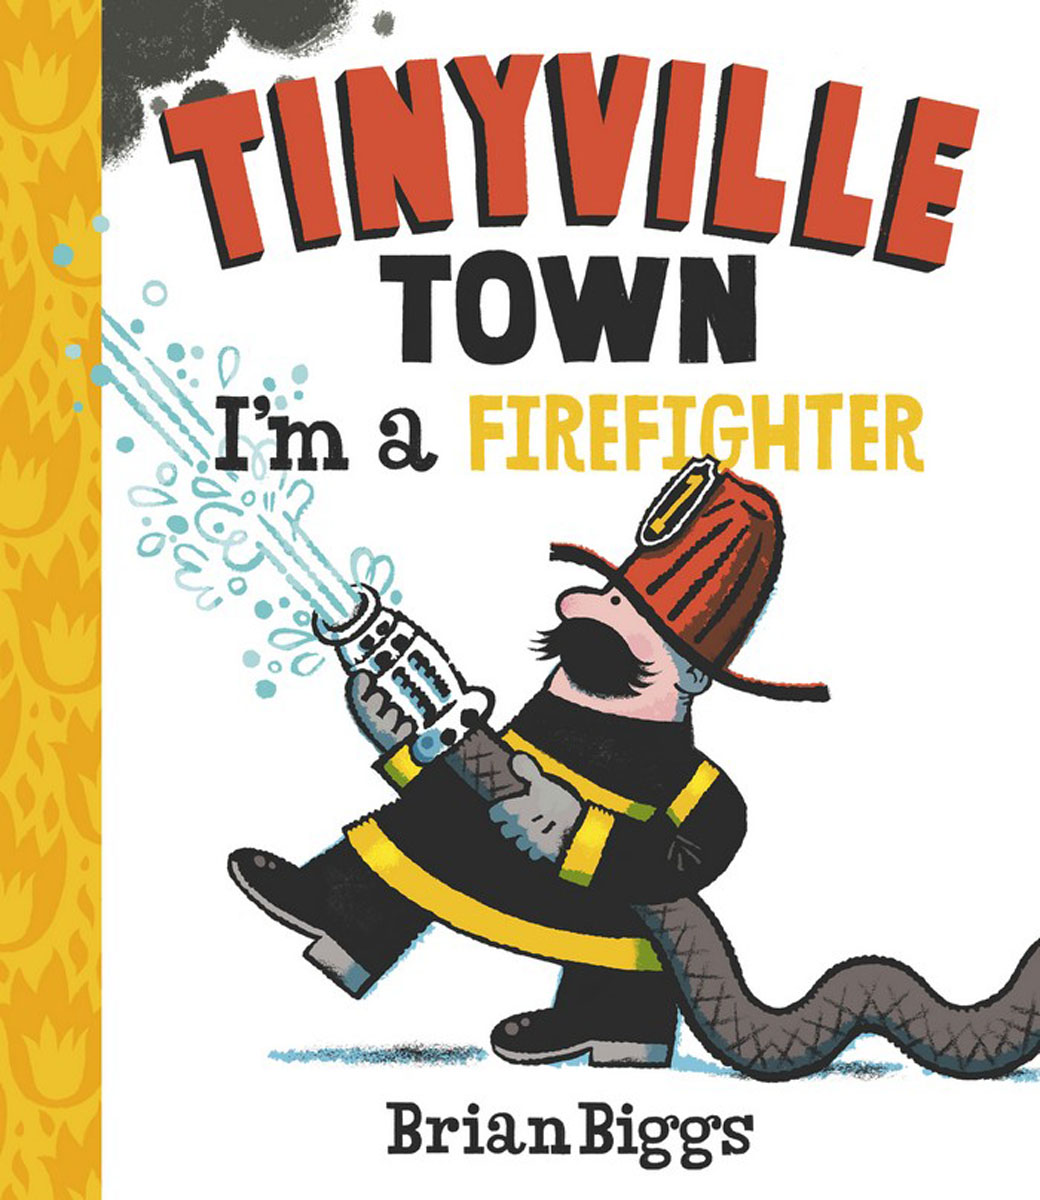 Tinyville Town: I'm a Firefighter seeing things as they are